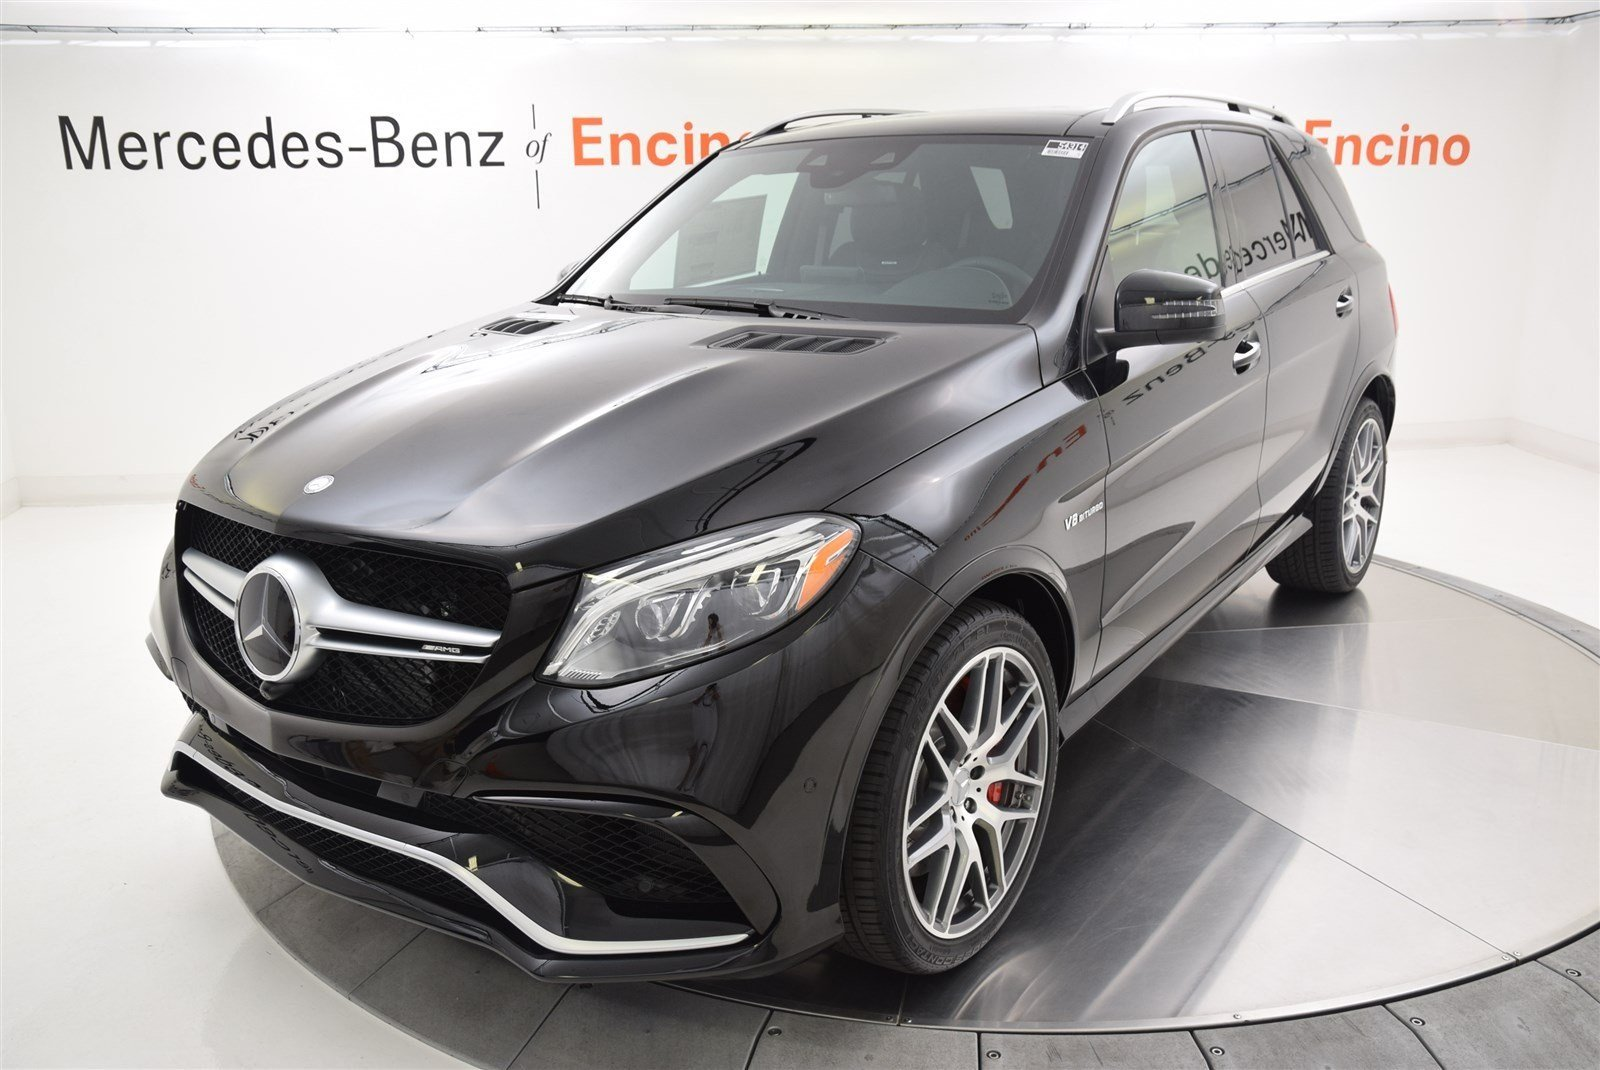 Mercedes Suv 2016 New 2016 Mercedes Benz Gle Gle 63 S Amg Suv Suv In Encino